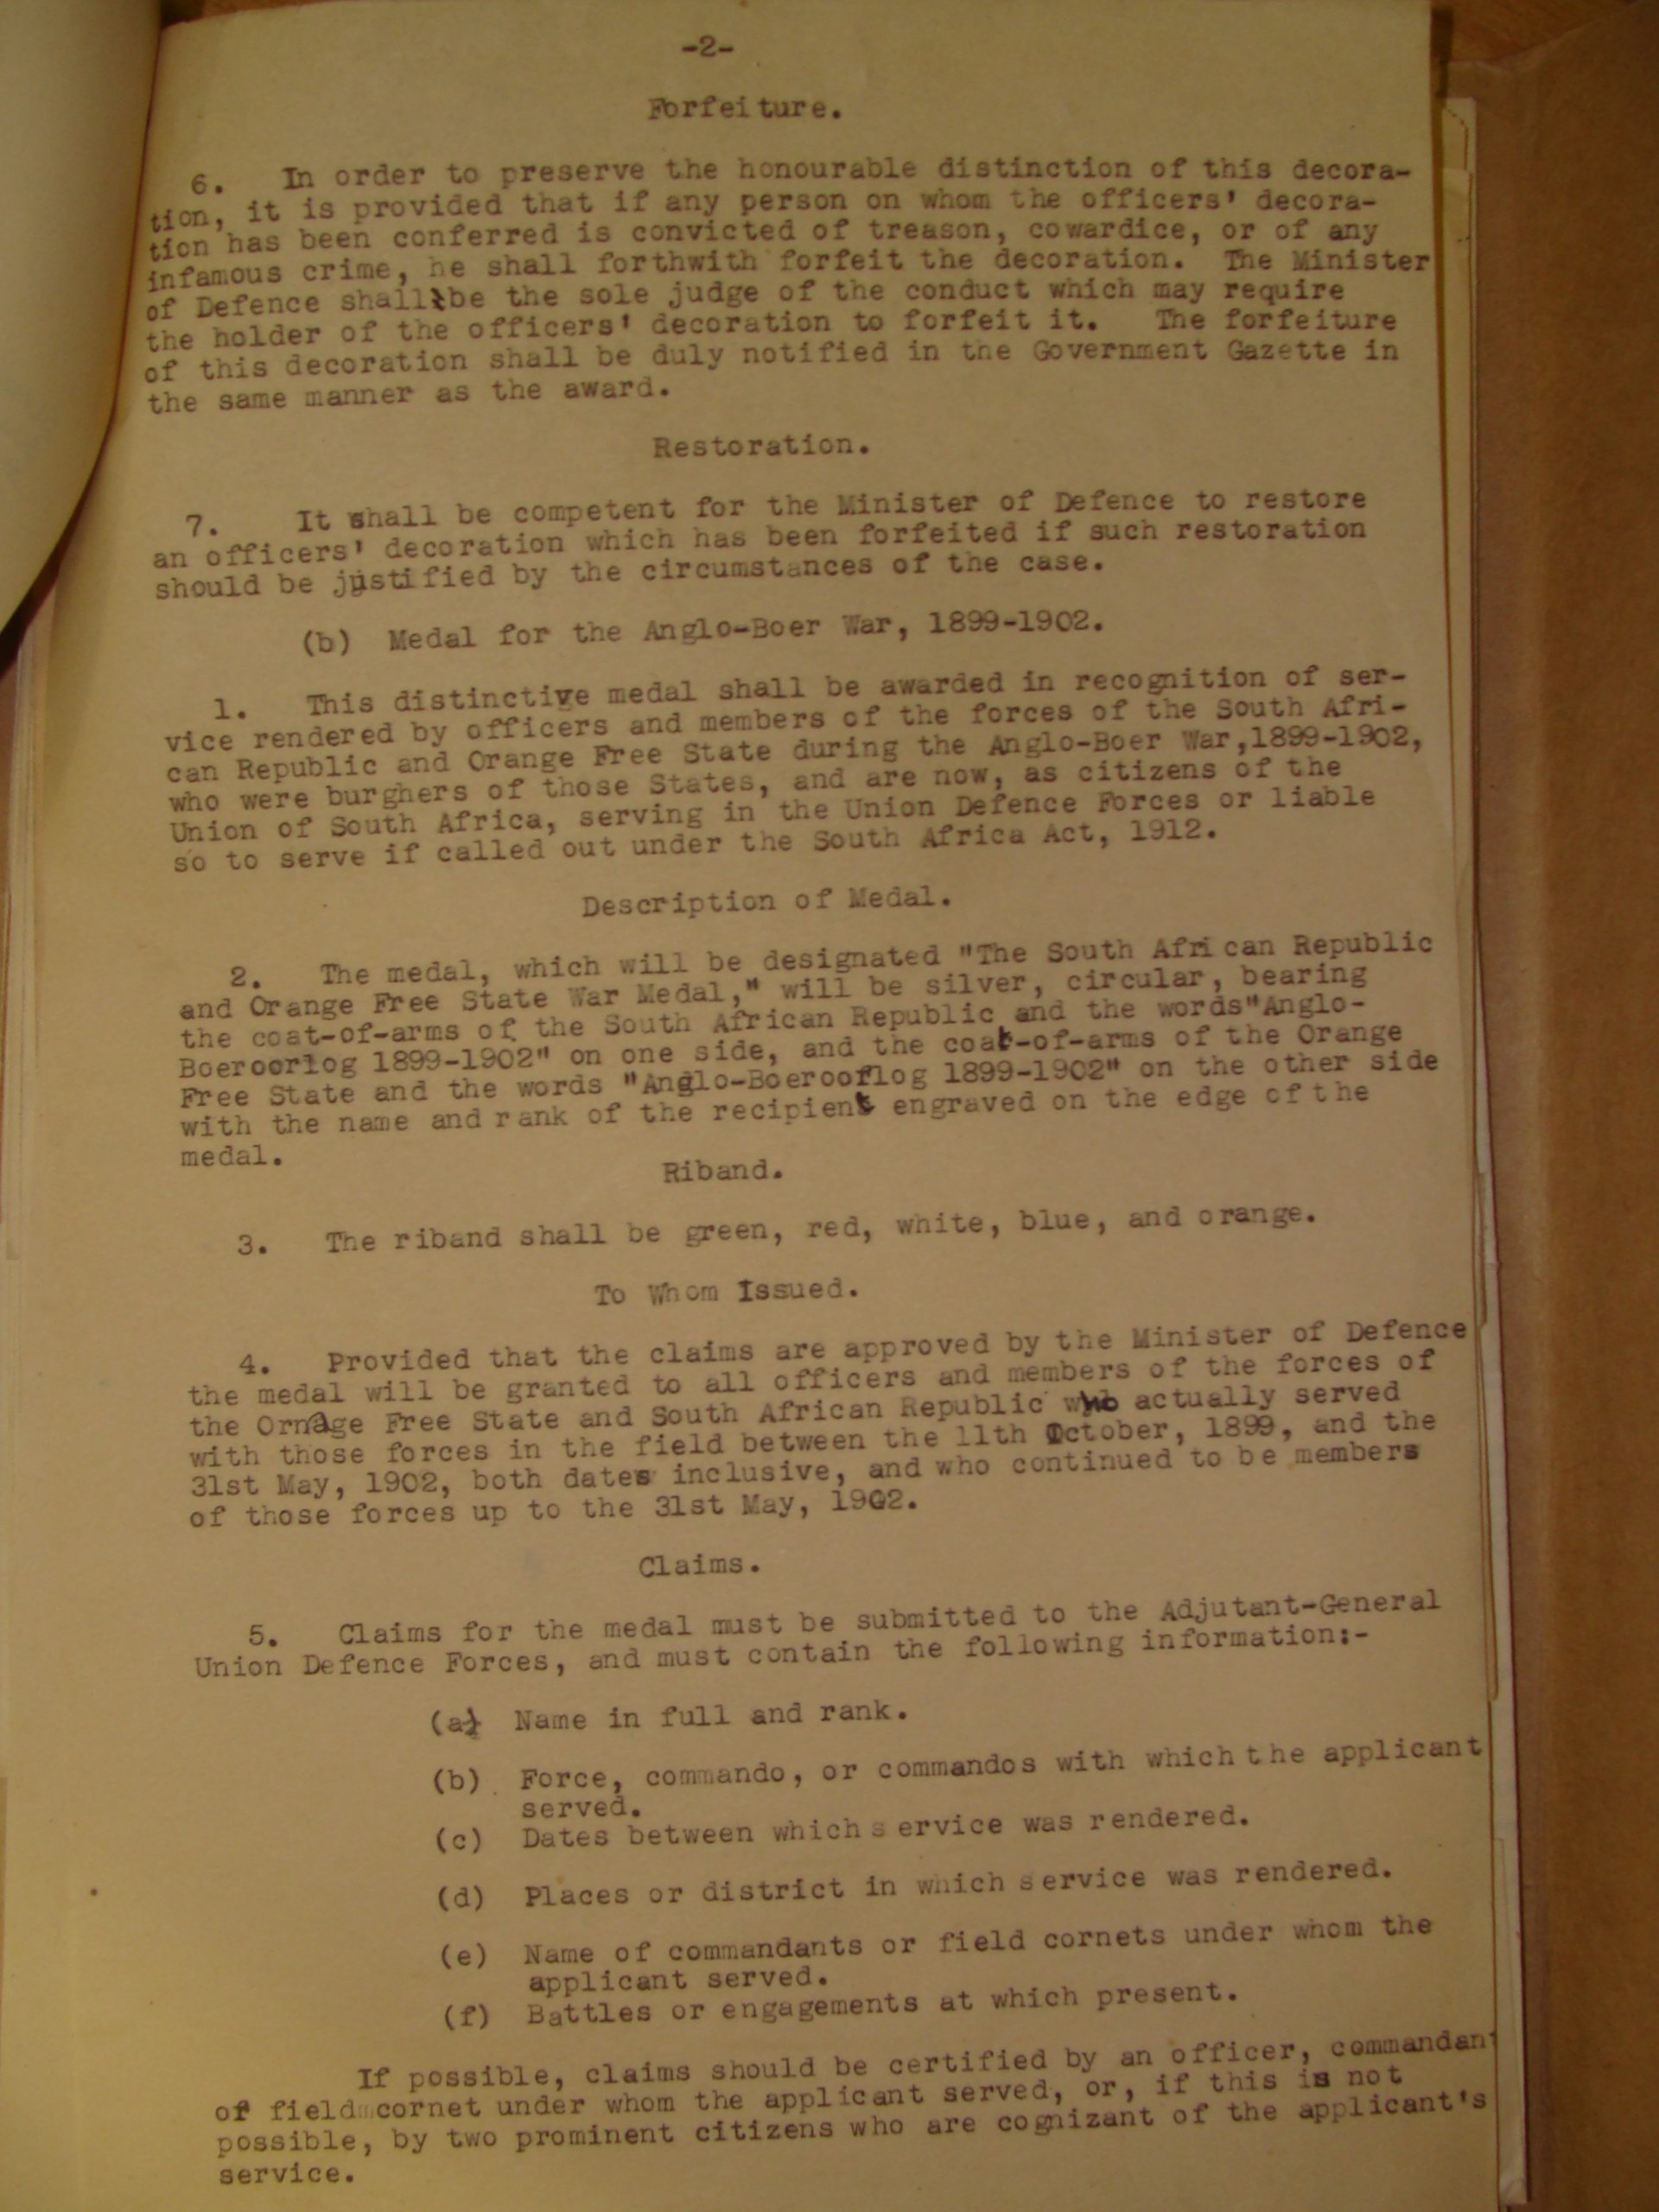 DTD and ABO Medal Regulations & Rulings - Page 4